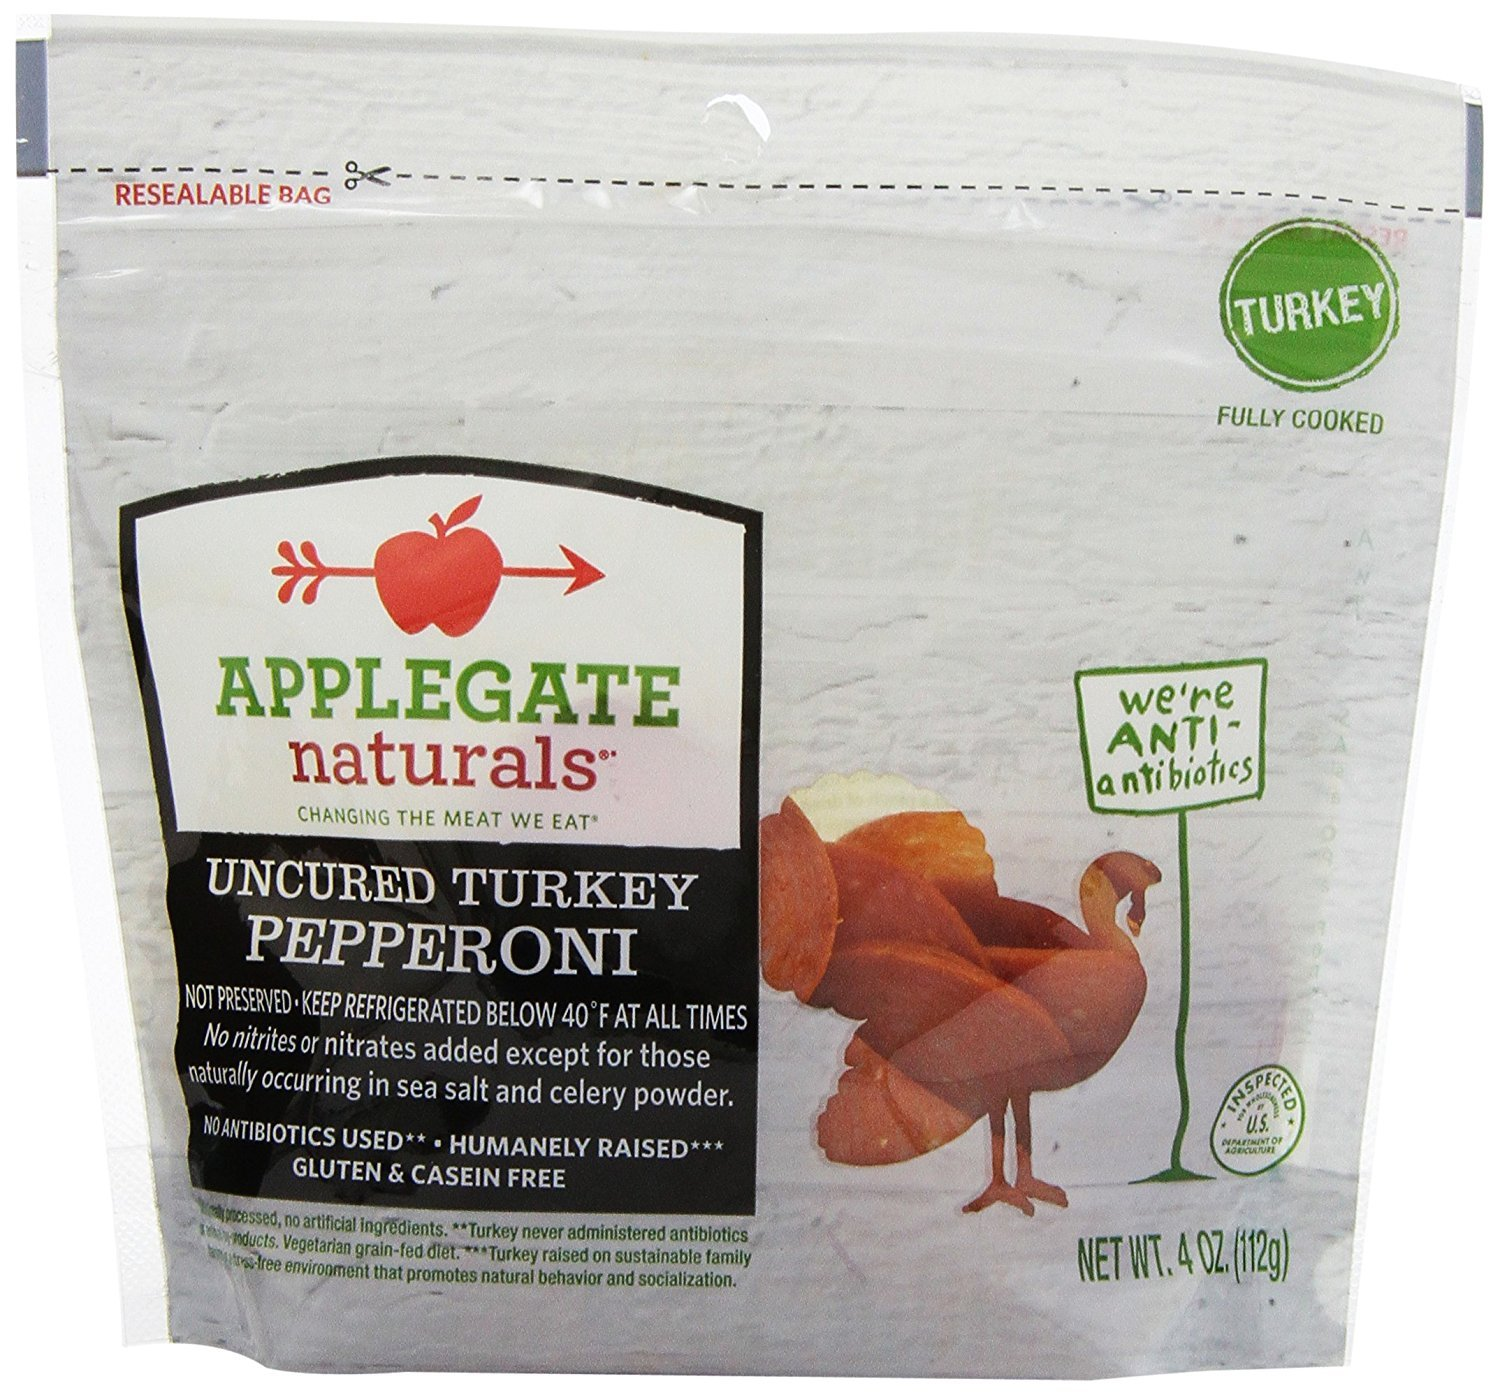 Applegate Naturals Uncured Turkey Pepperoni, 4 Ounce (Pack of 12)